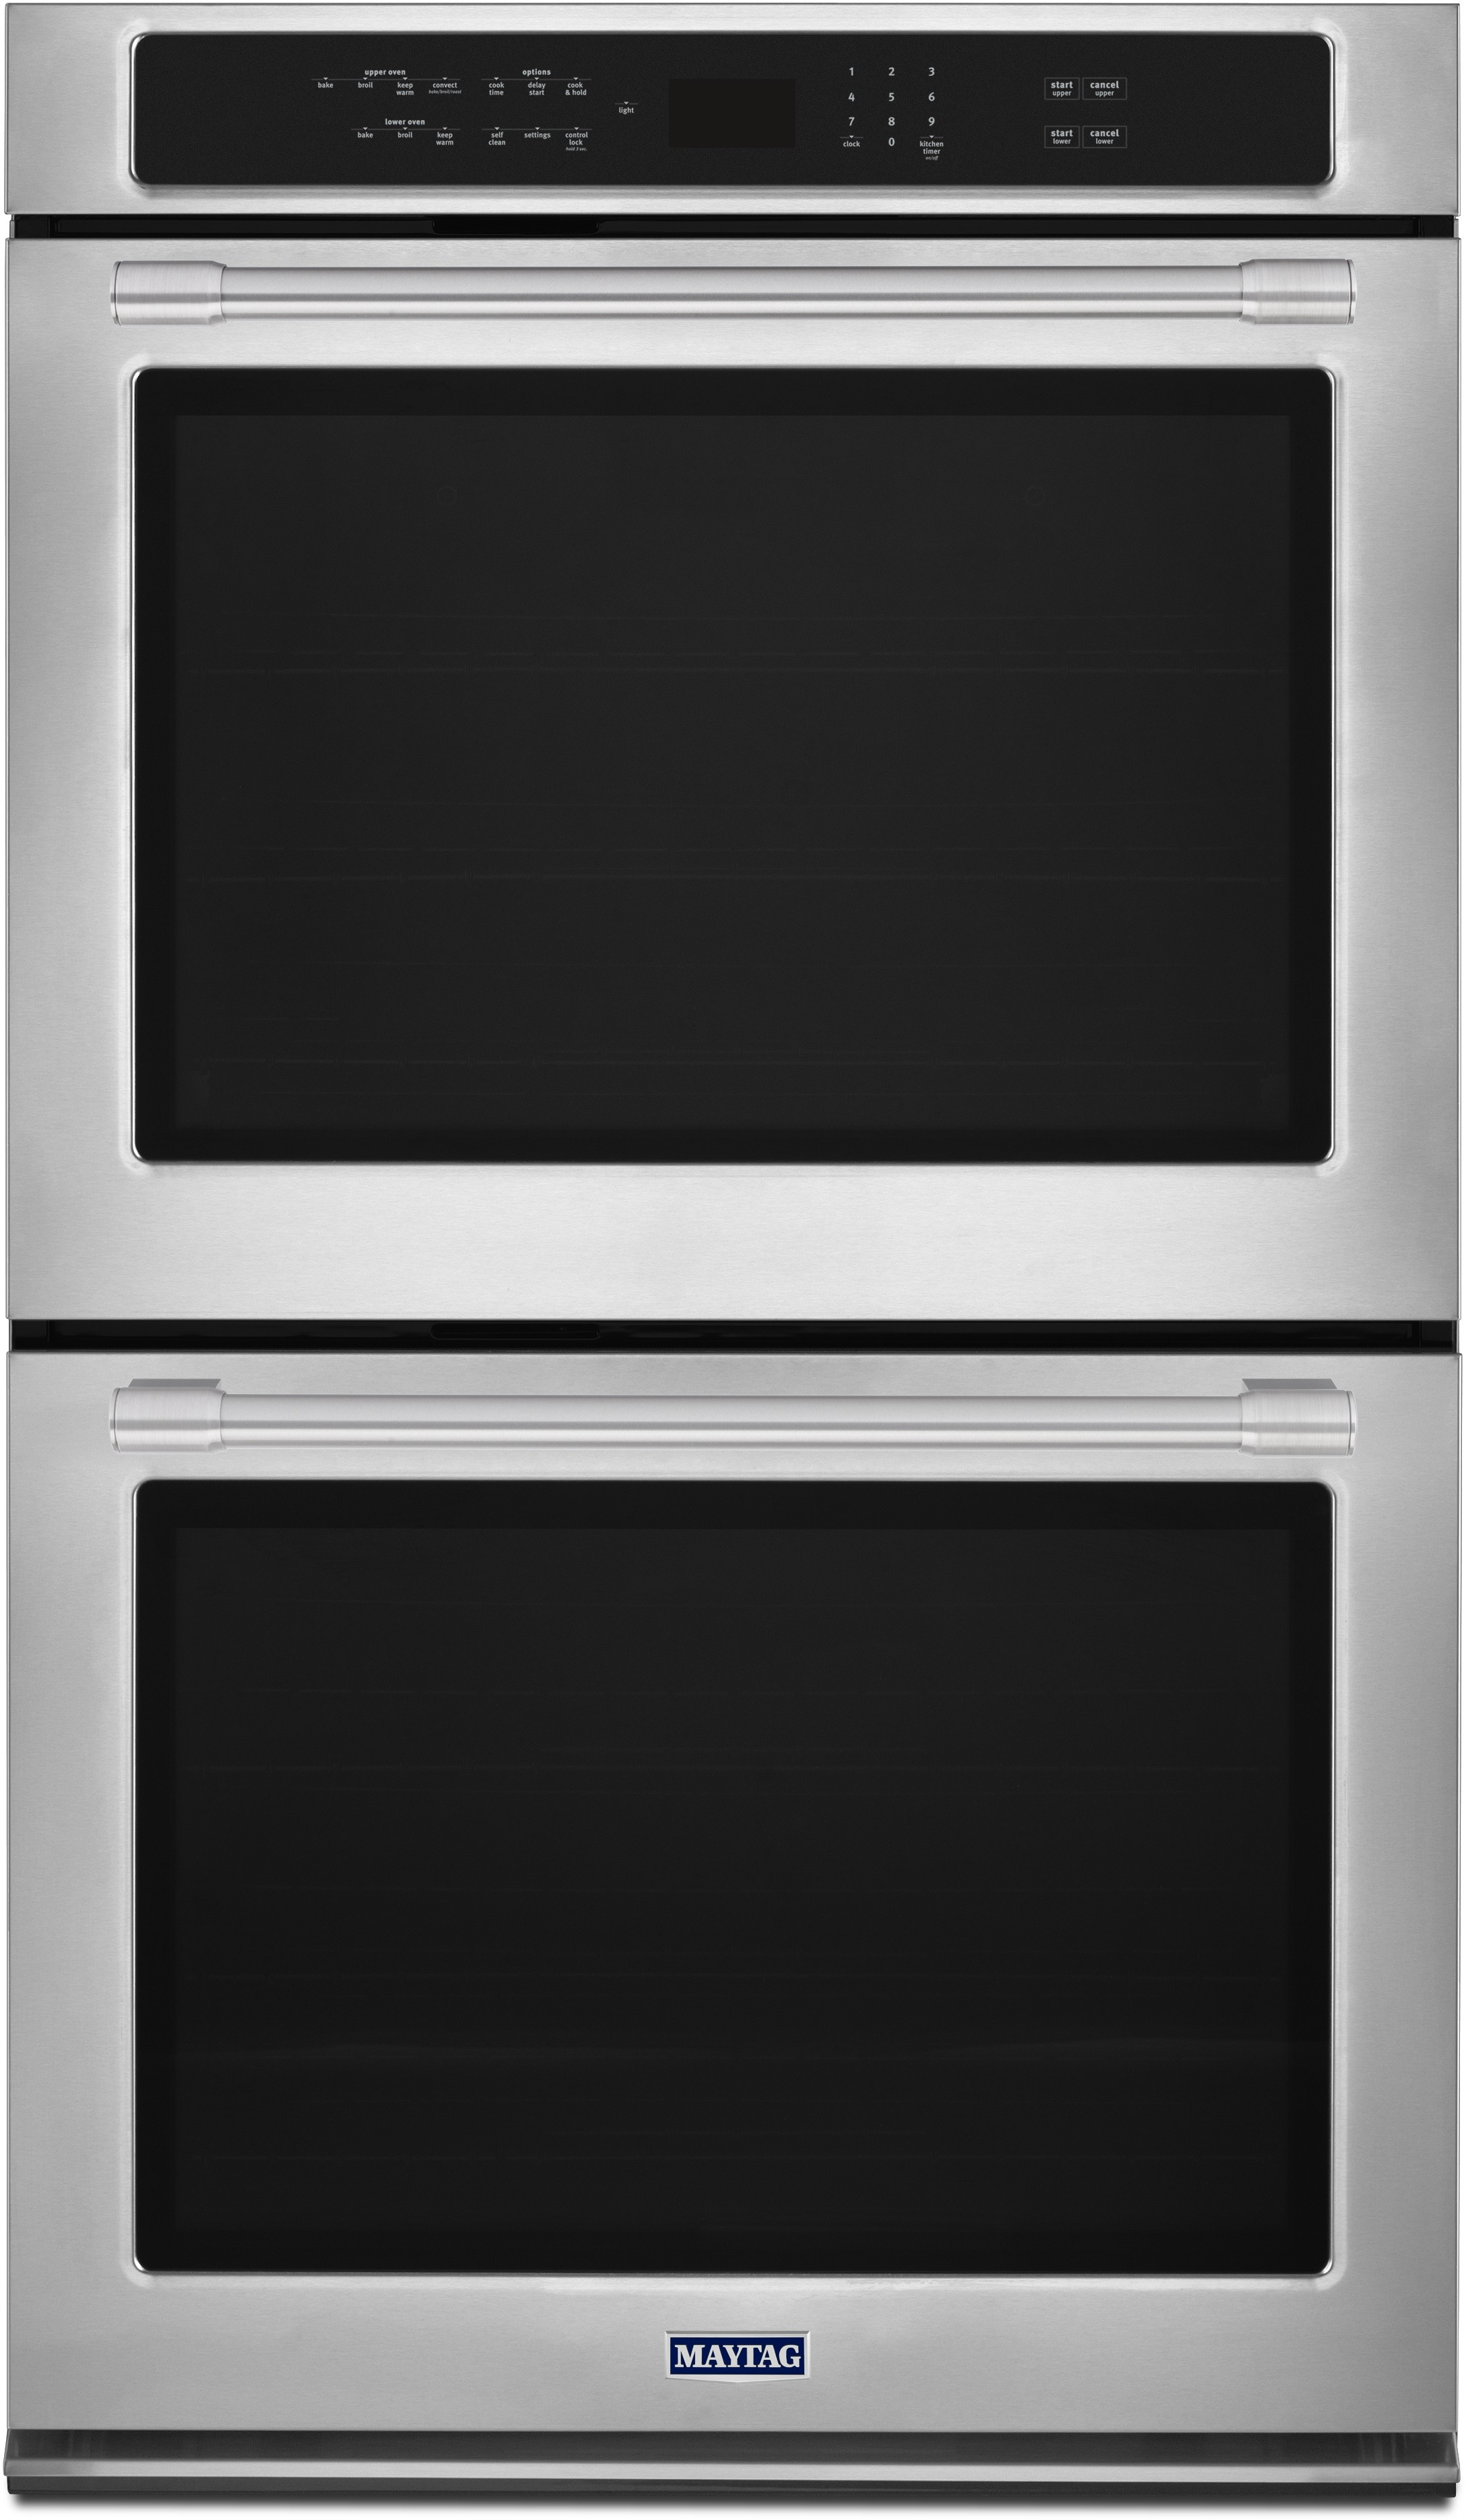 Maytag Mew9627fz Wall Oven Electric Wall Oven Stainless Steel Oven